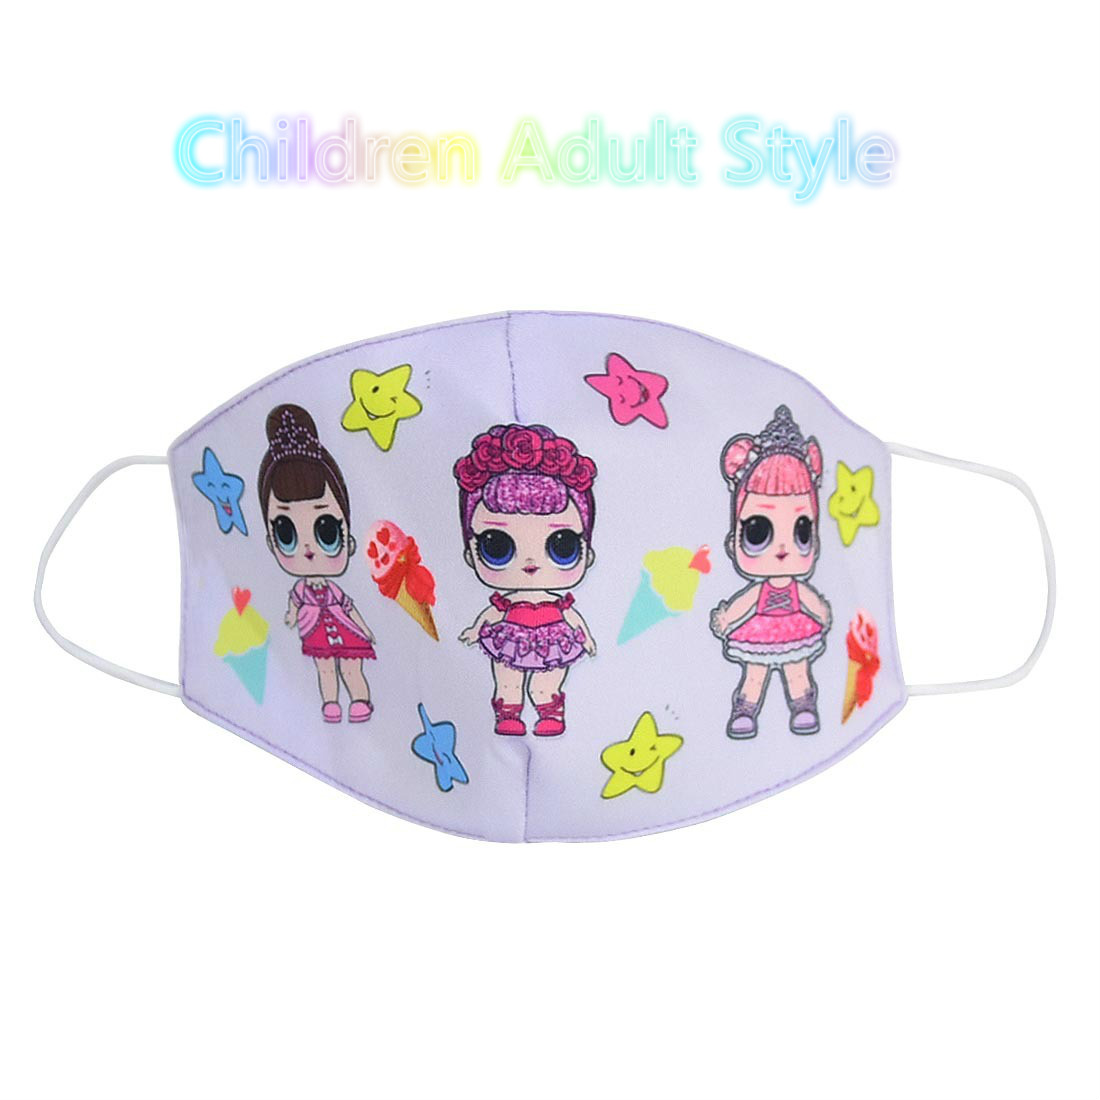 LOL Surprise Dolls Cartoon Cottons Masks Anti Dust Reusable Breathable Face Mouth Protection LOL Dolls Masks Gifts For Kid Girls